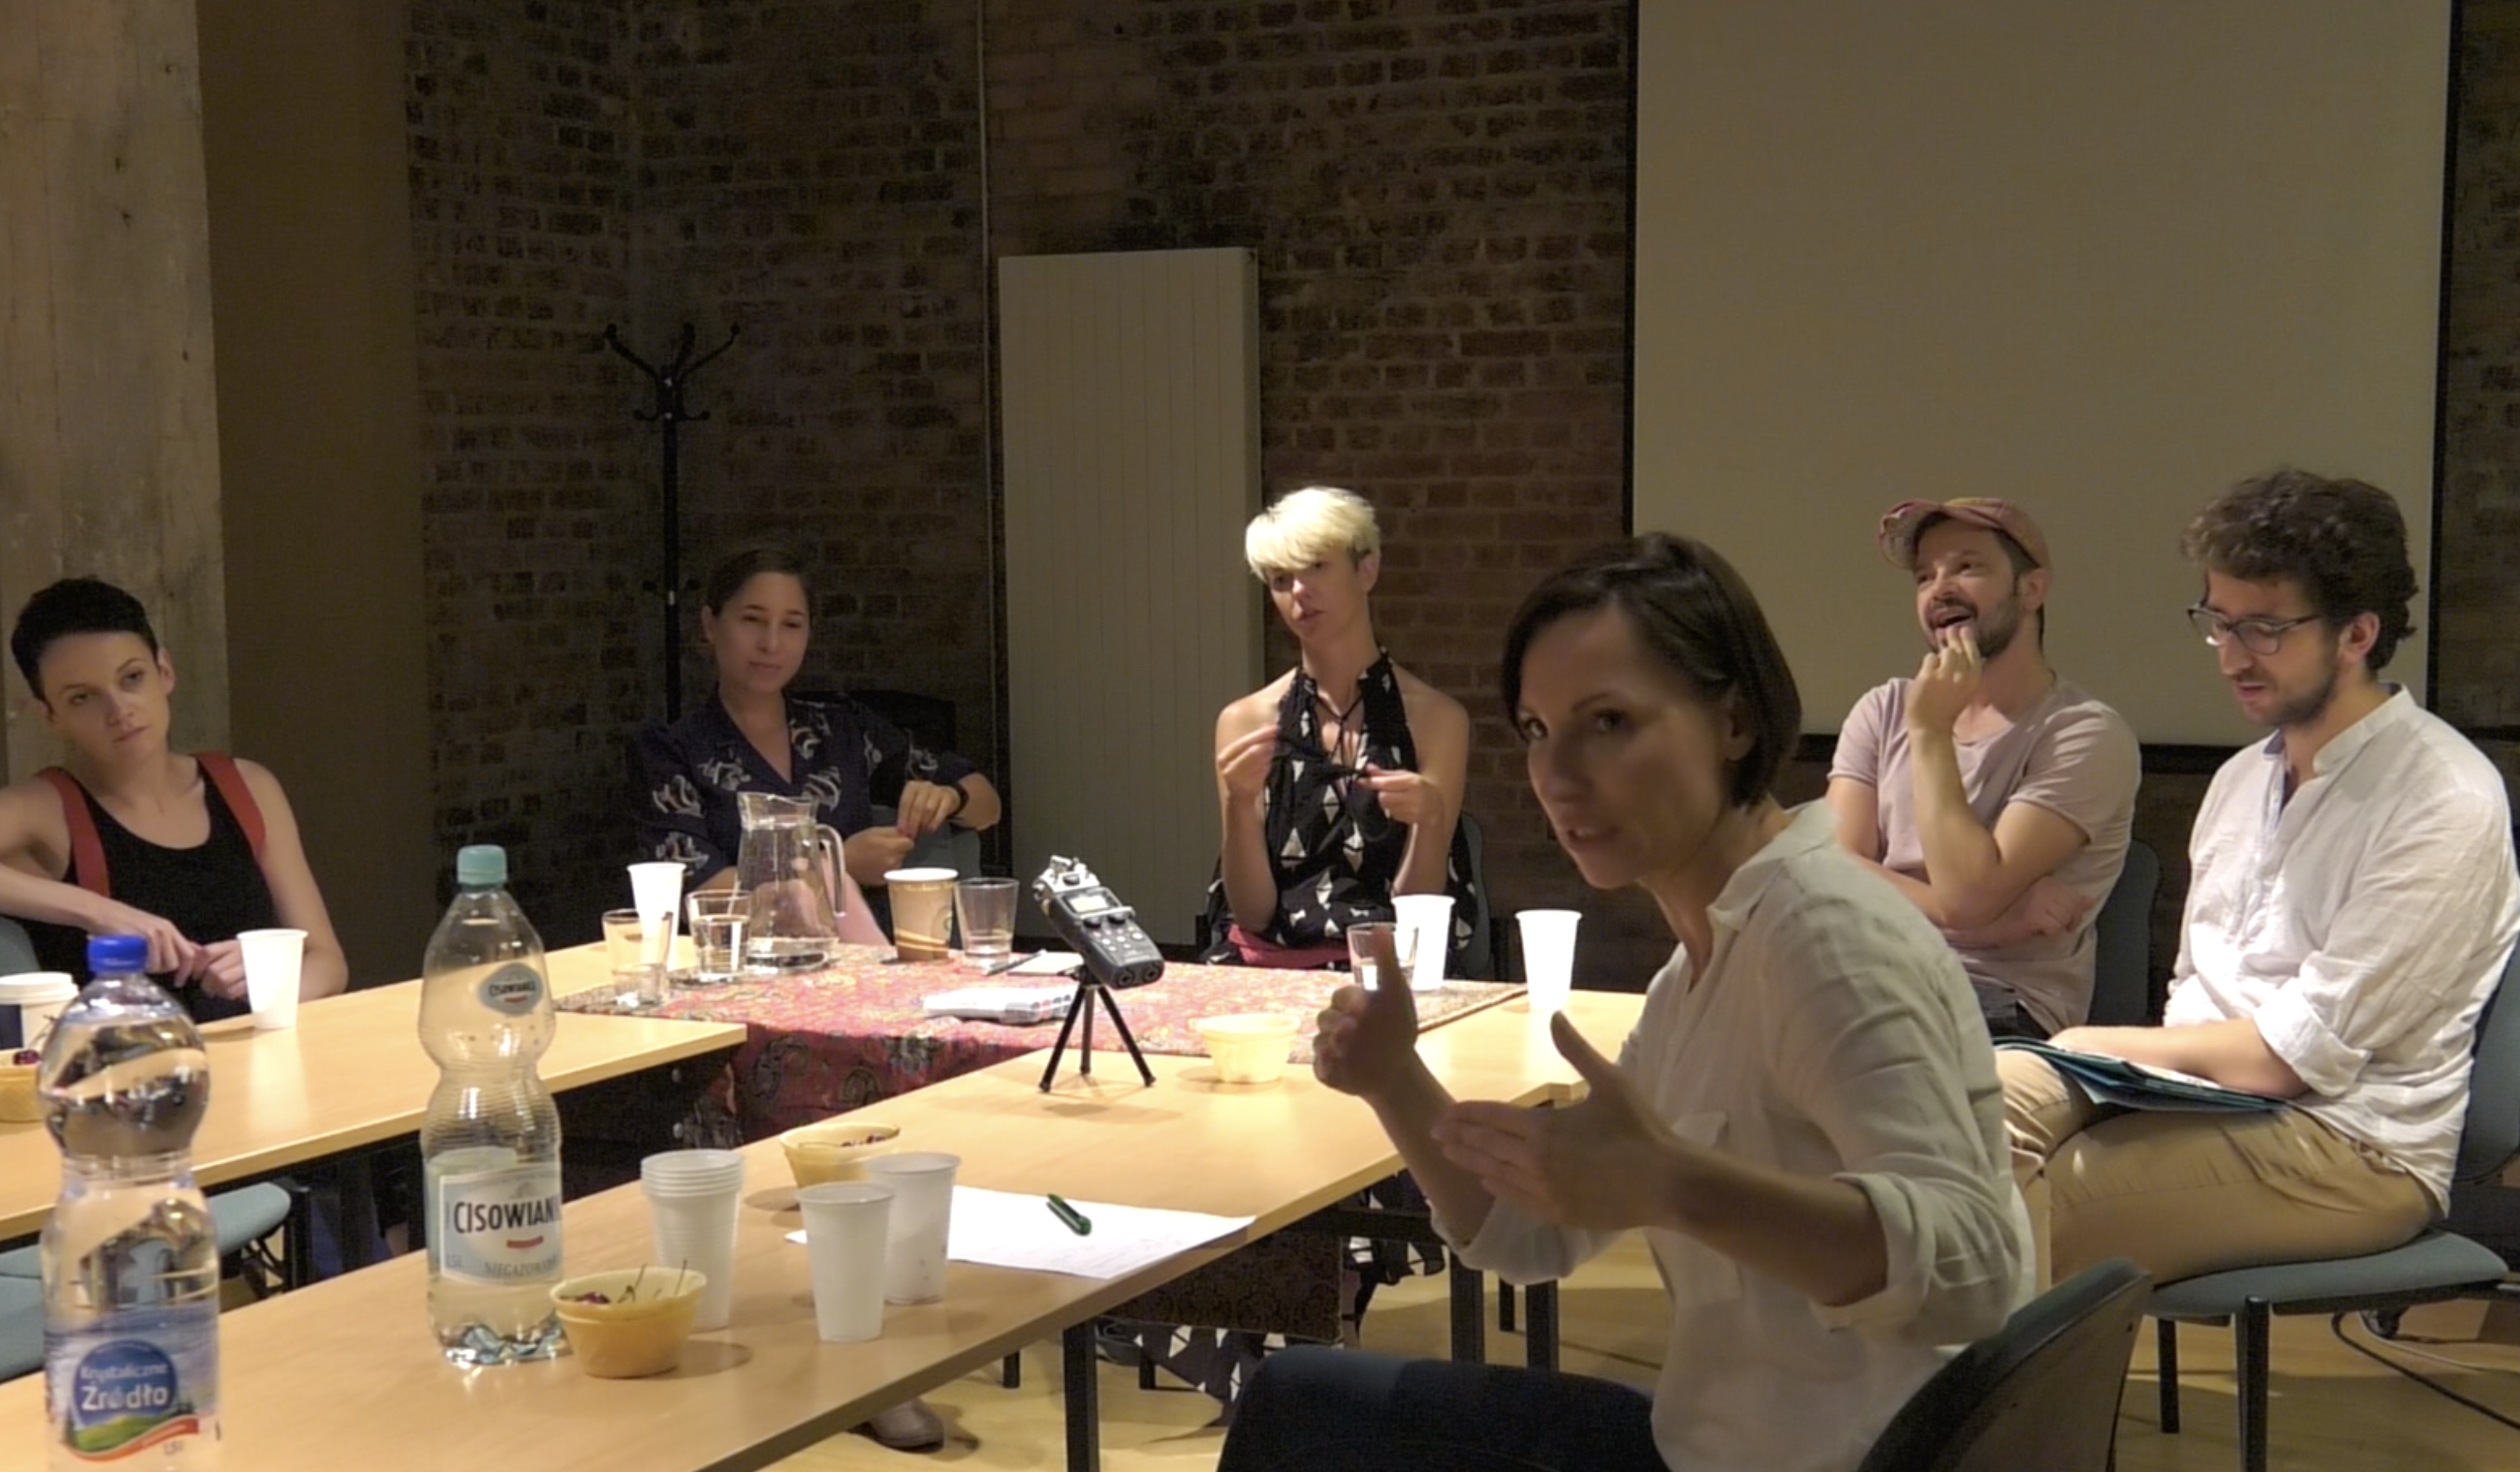 From left: J. Michalik, A. Smolar, J. Sobczyk, M. Borczuch, S. Godlewski, A. Siwiak, 'Theatre, Artistic and Research Collectives' conference, Adam Mickiewicz University in Poznań, 19 June 2018. Photo from the recording by Anna Paprzycka.